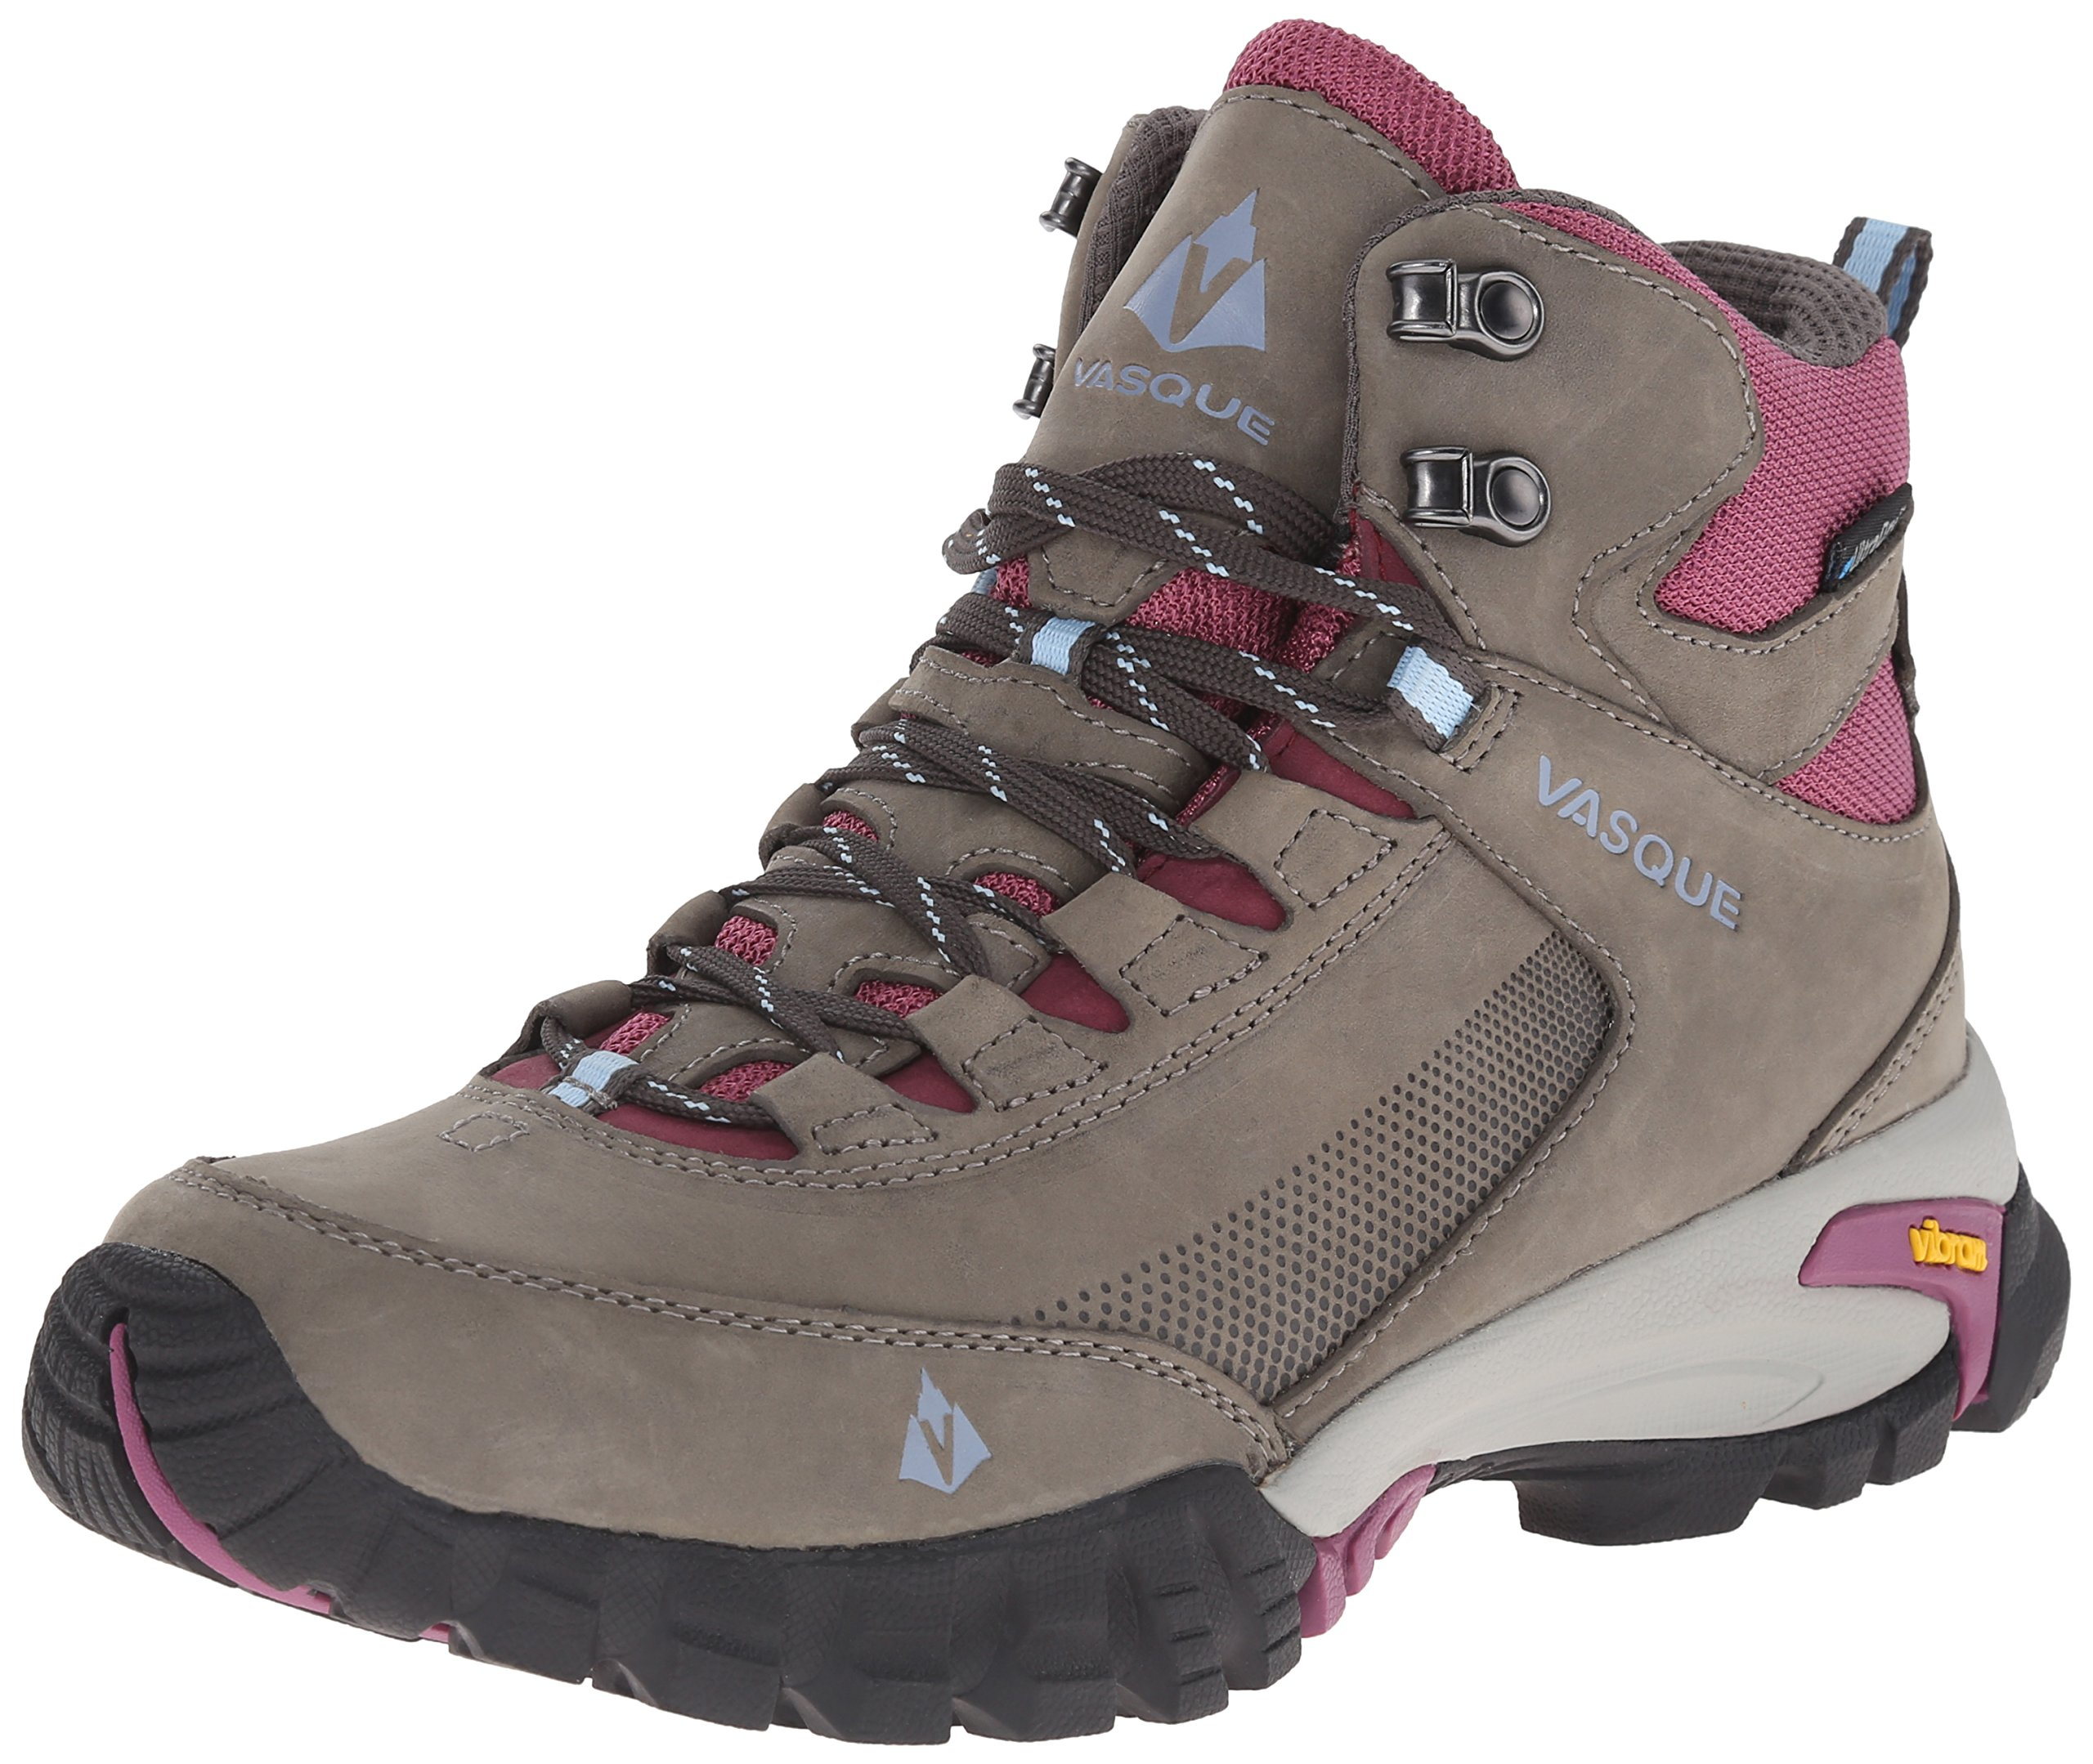 Vasque Women's Talus Trek UltraDry Hiking Boot, Gargoyle/Damson, 10.5 M US by Vasque